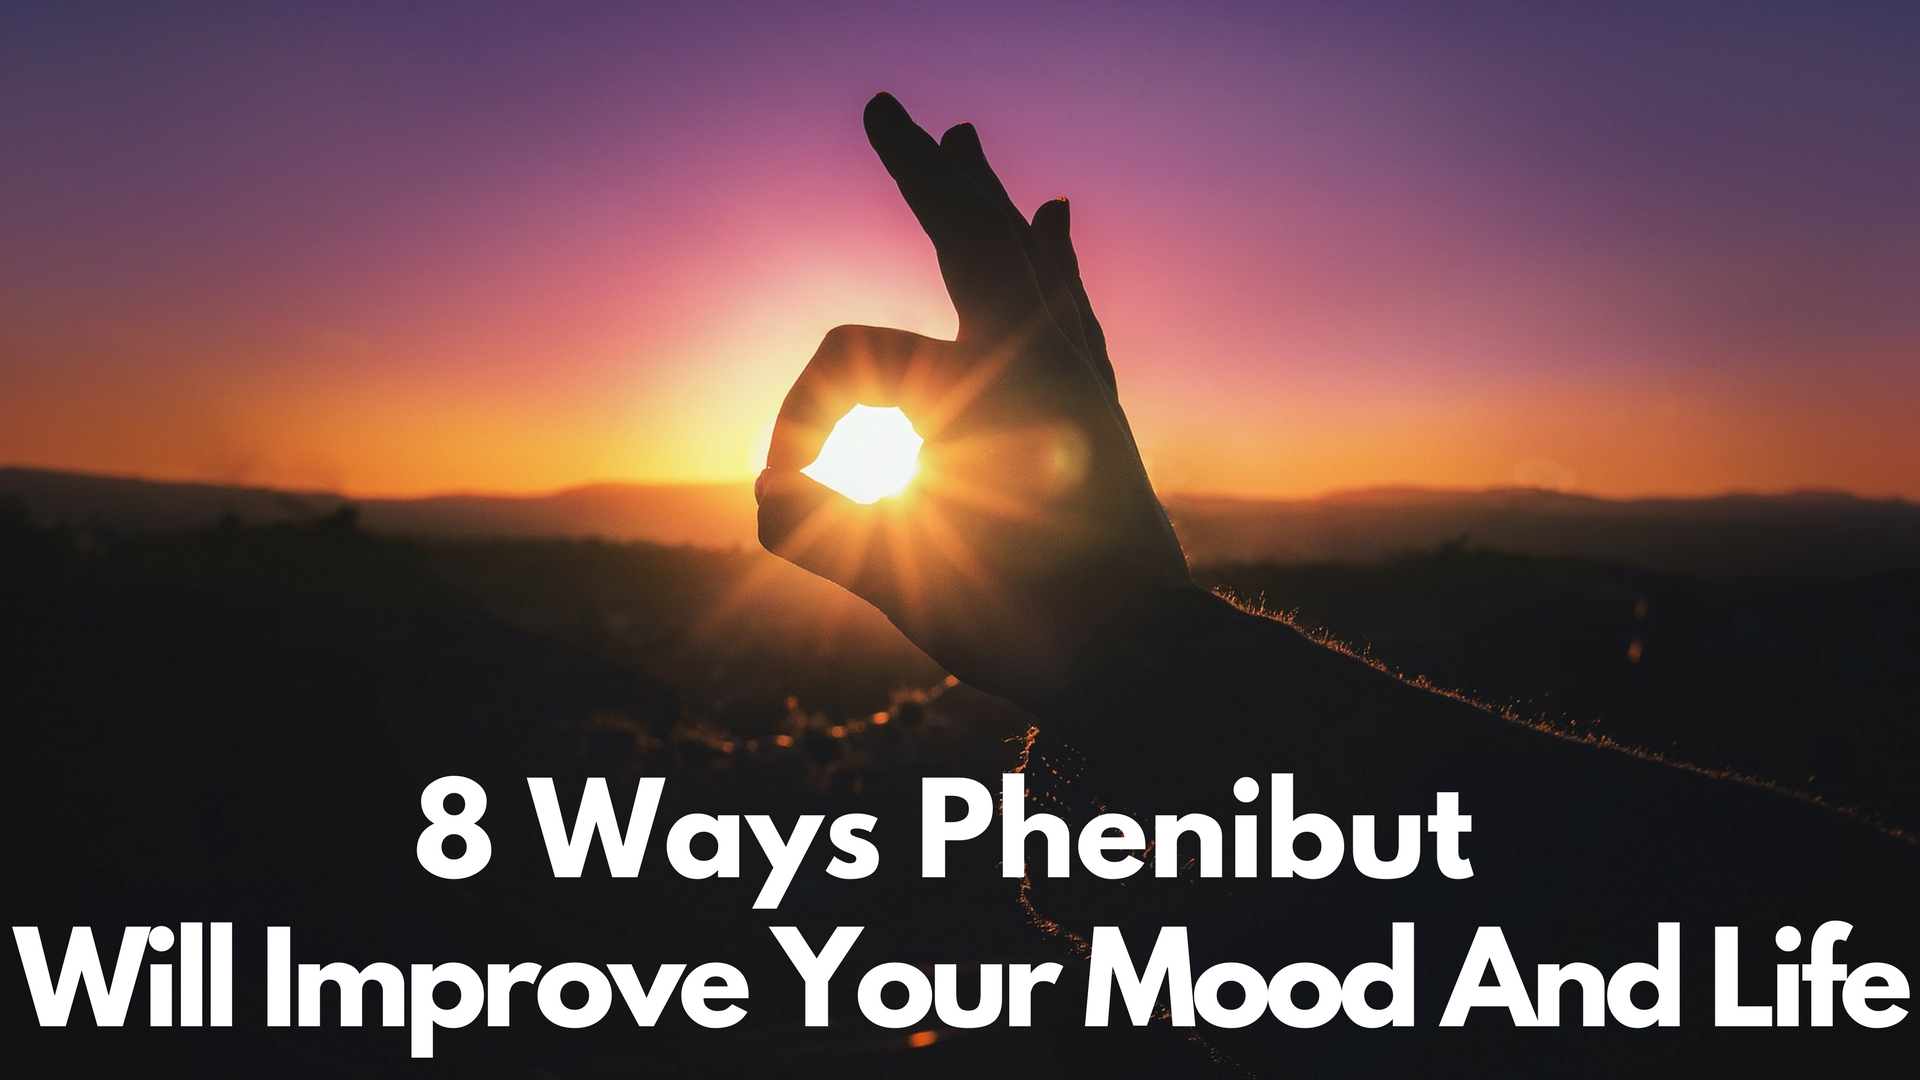 8 Ways Phenibut Will Improve Your Mood and Help Your Life